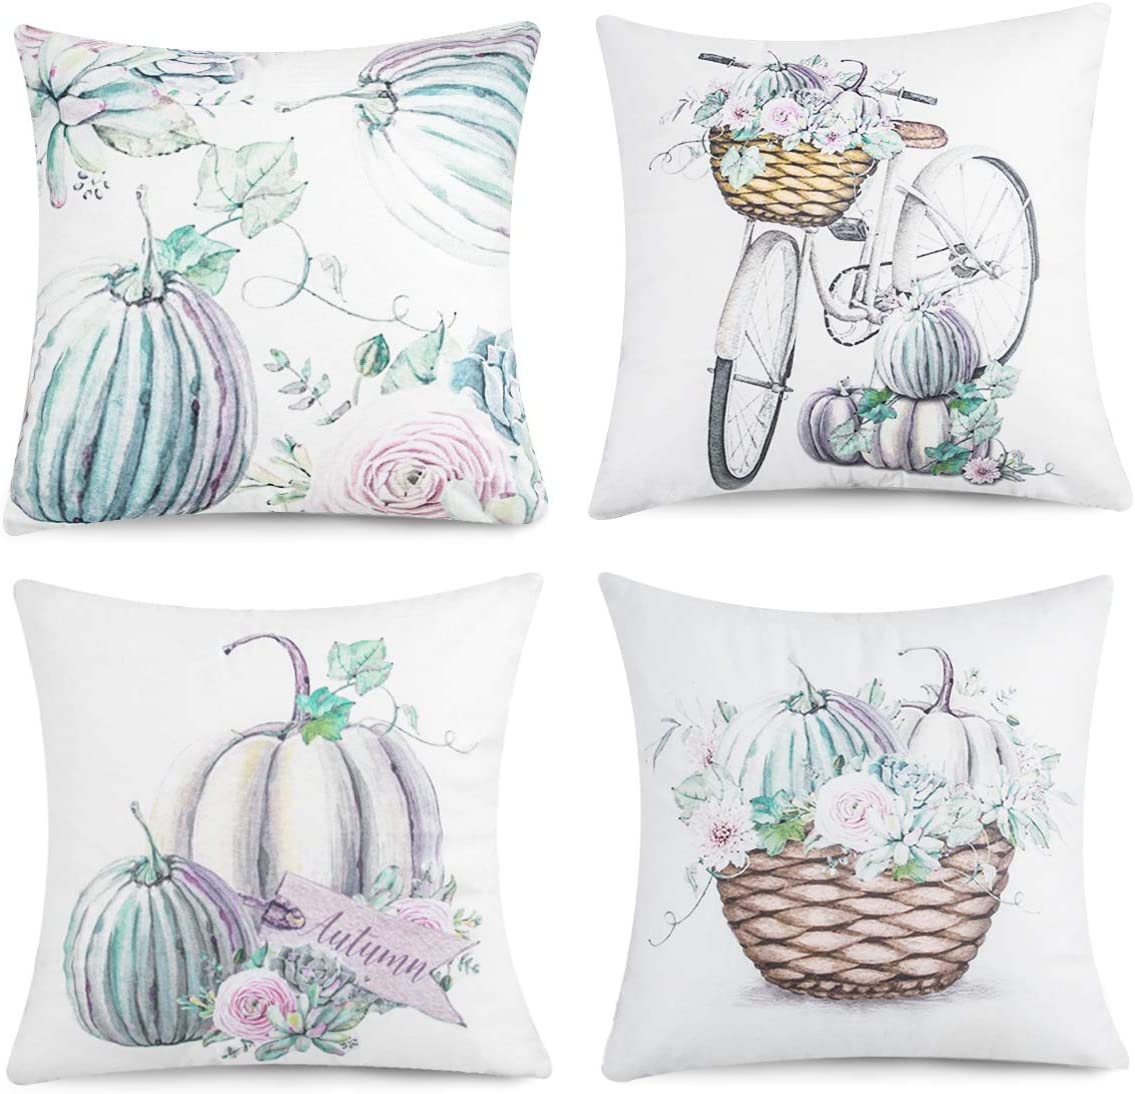 Joyhalo Fall Pillow Covers 20x20 Set of 20 Clearance Outdoor Fall Throw  Pillow Covers Farmhouse Pumpkin Decorative Pillows Cushion Cases for Home  ...